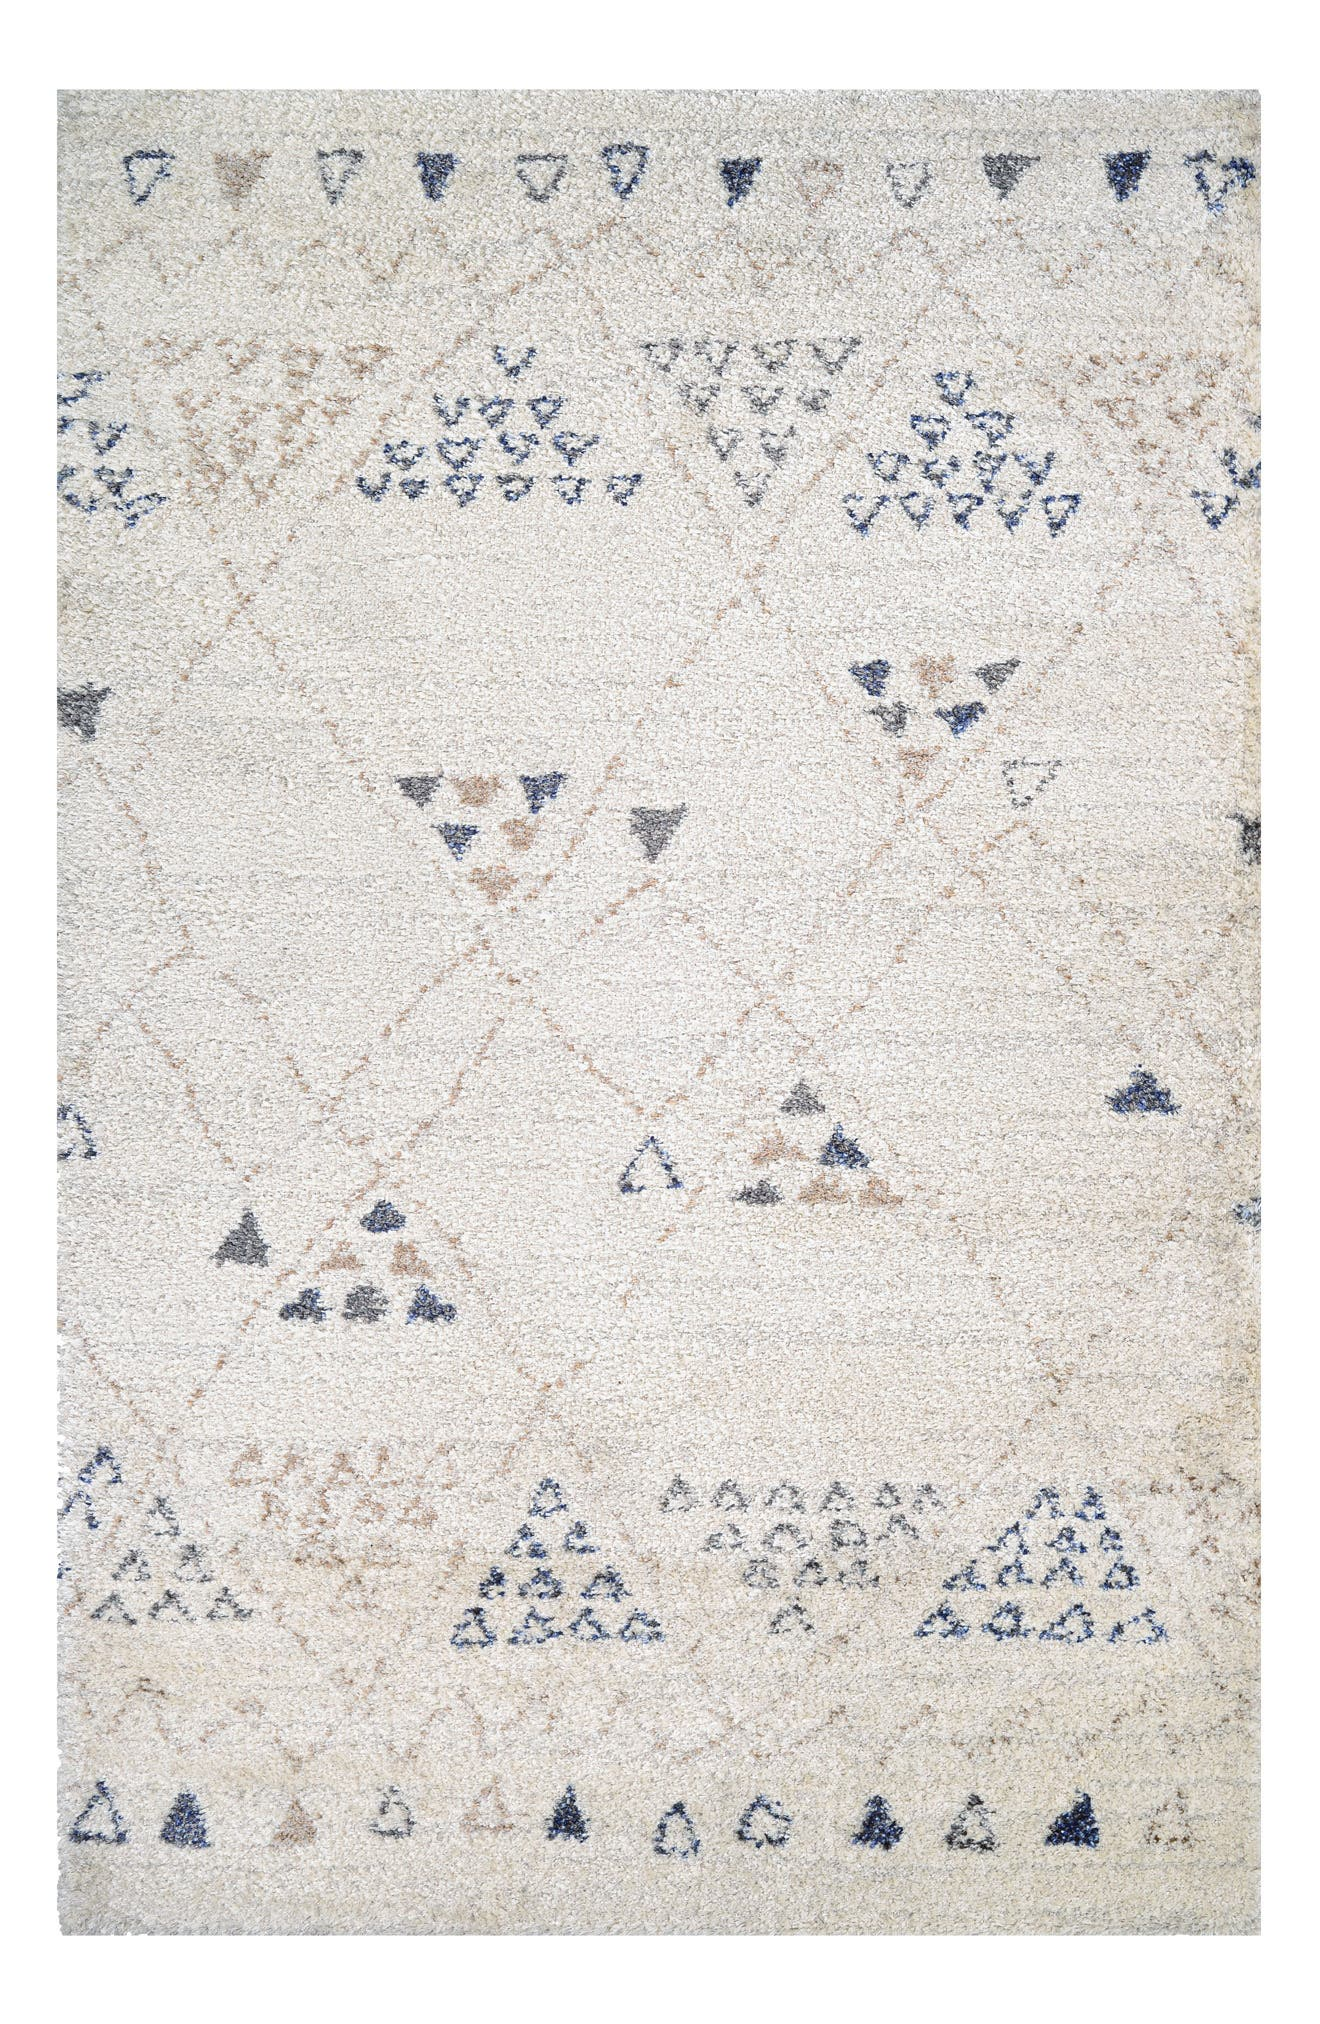 Alternate Image 1 Selected - Couristan Bromley Jakarta Area Rug